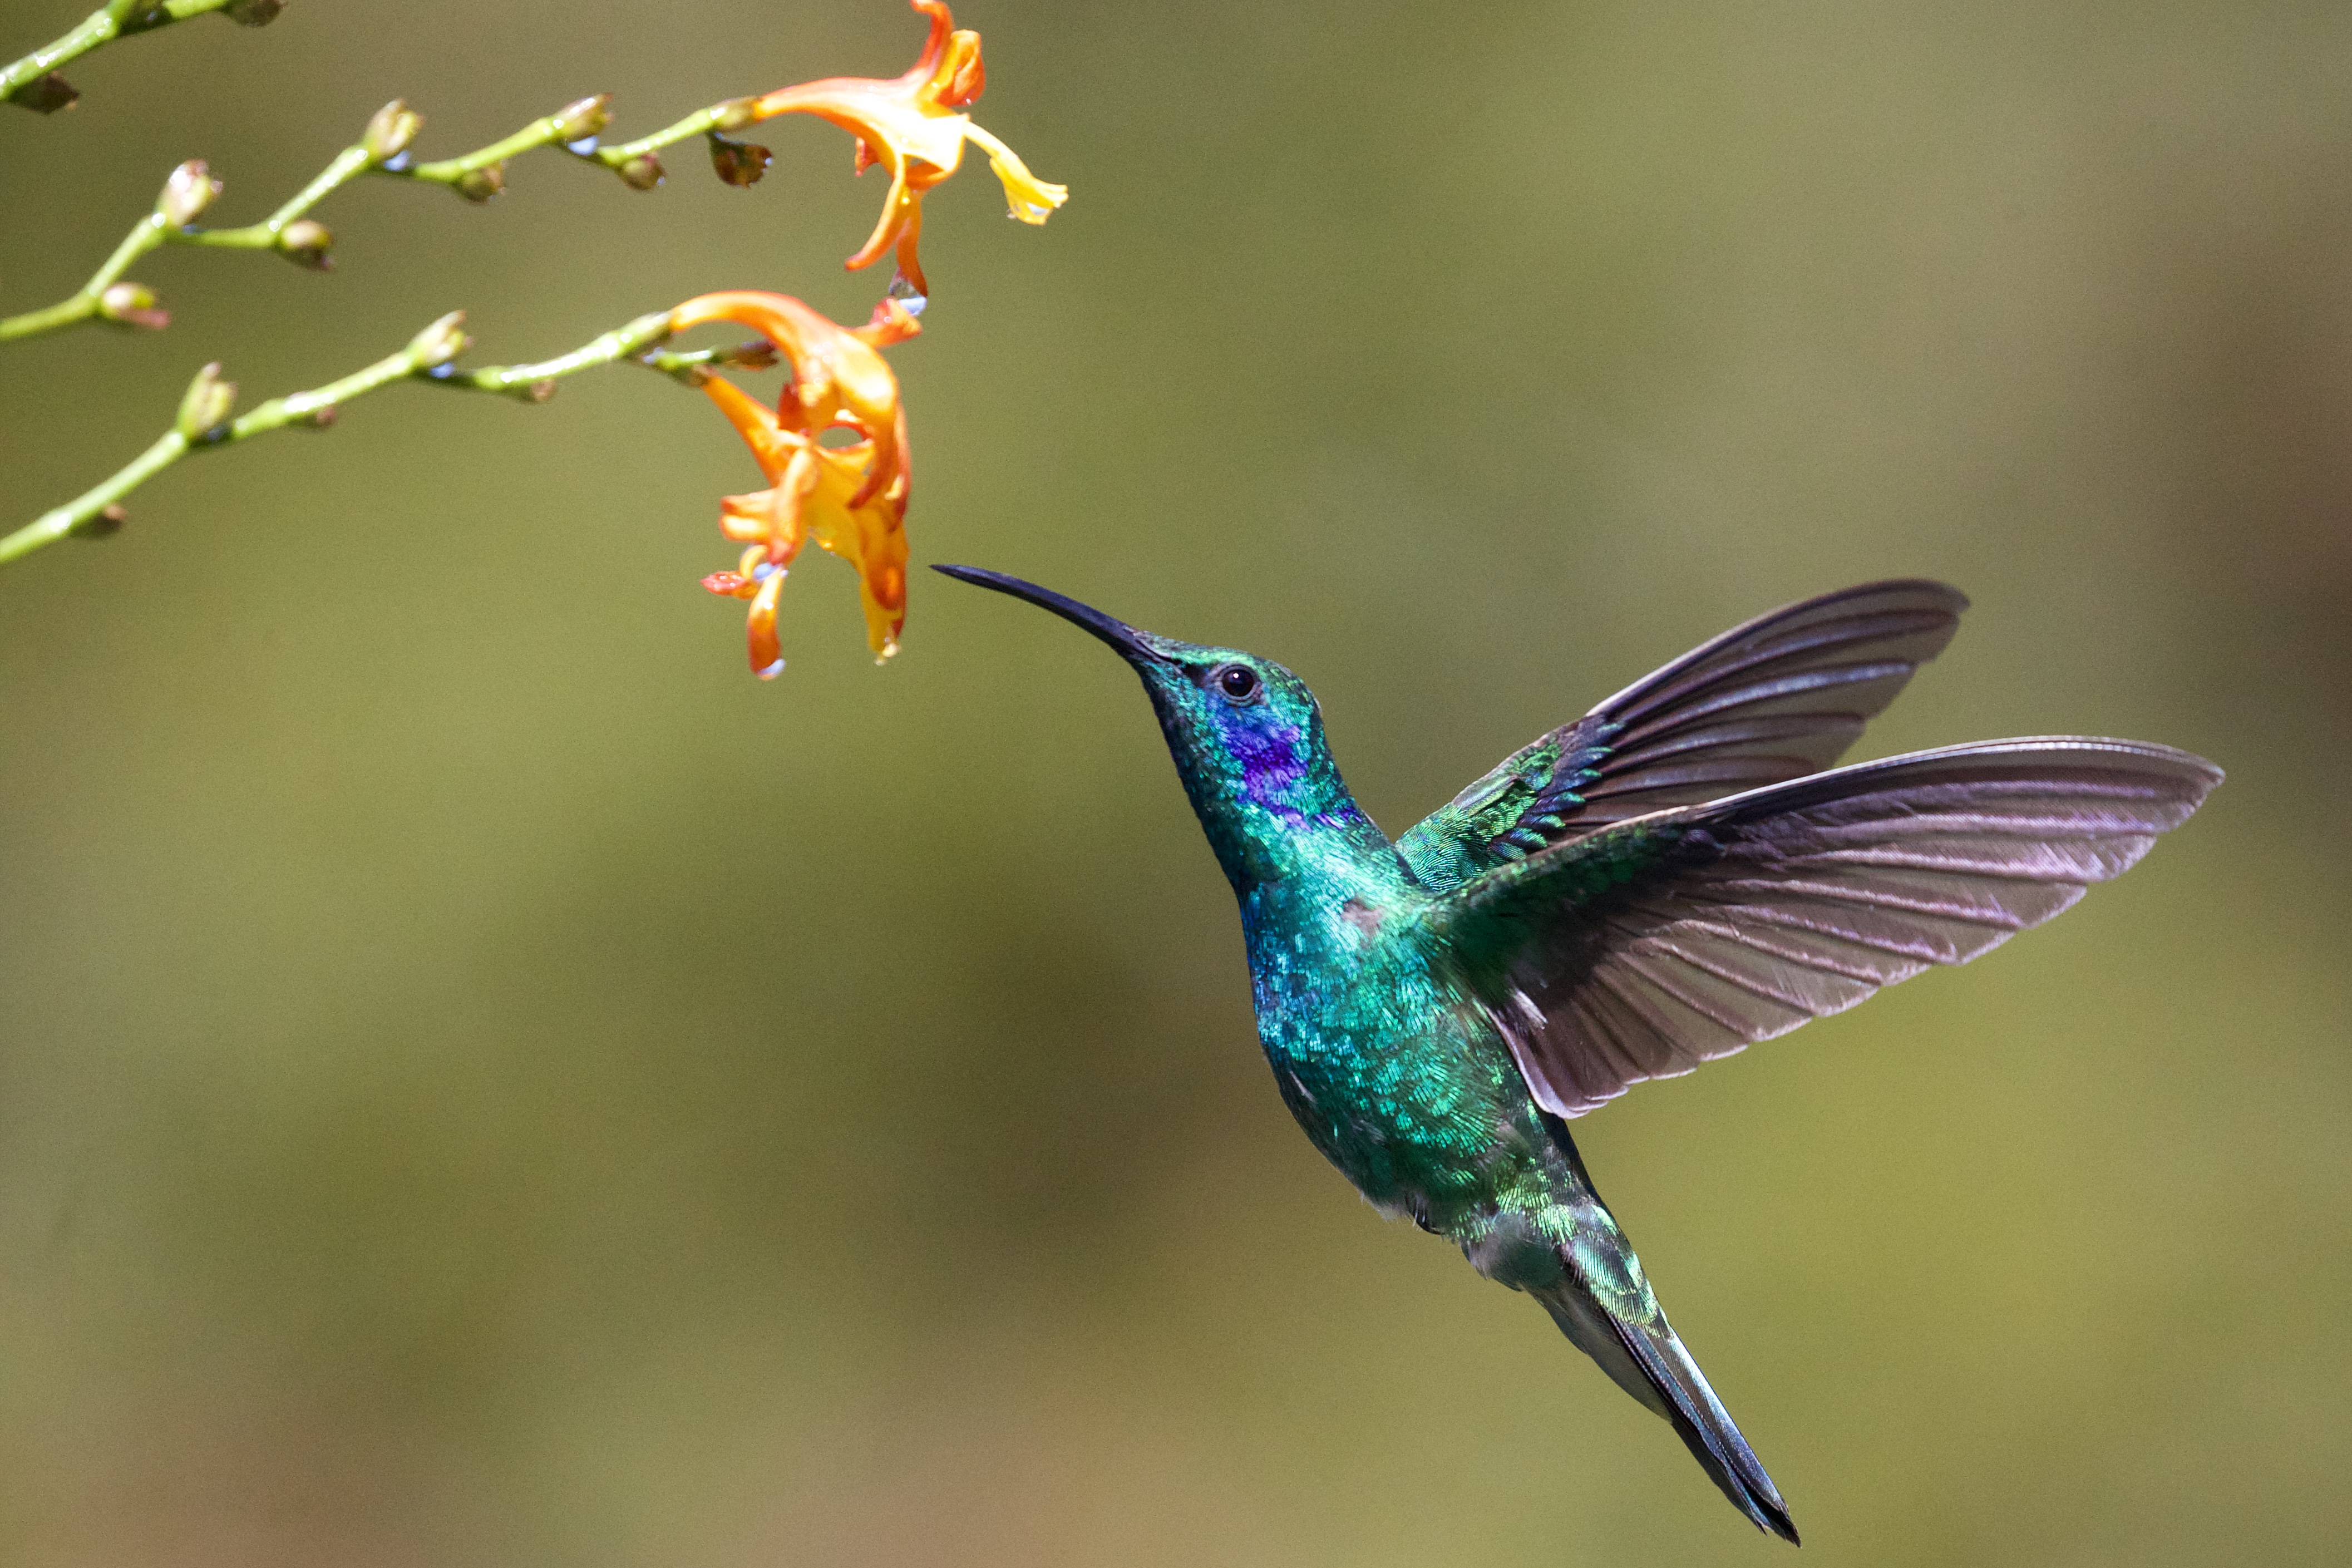 Wings Wallpaper Hd Hummingbird Pictures Hd Download Free Images On Unsplash